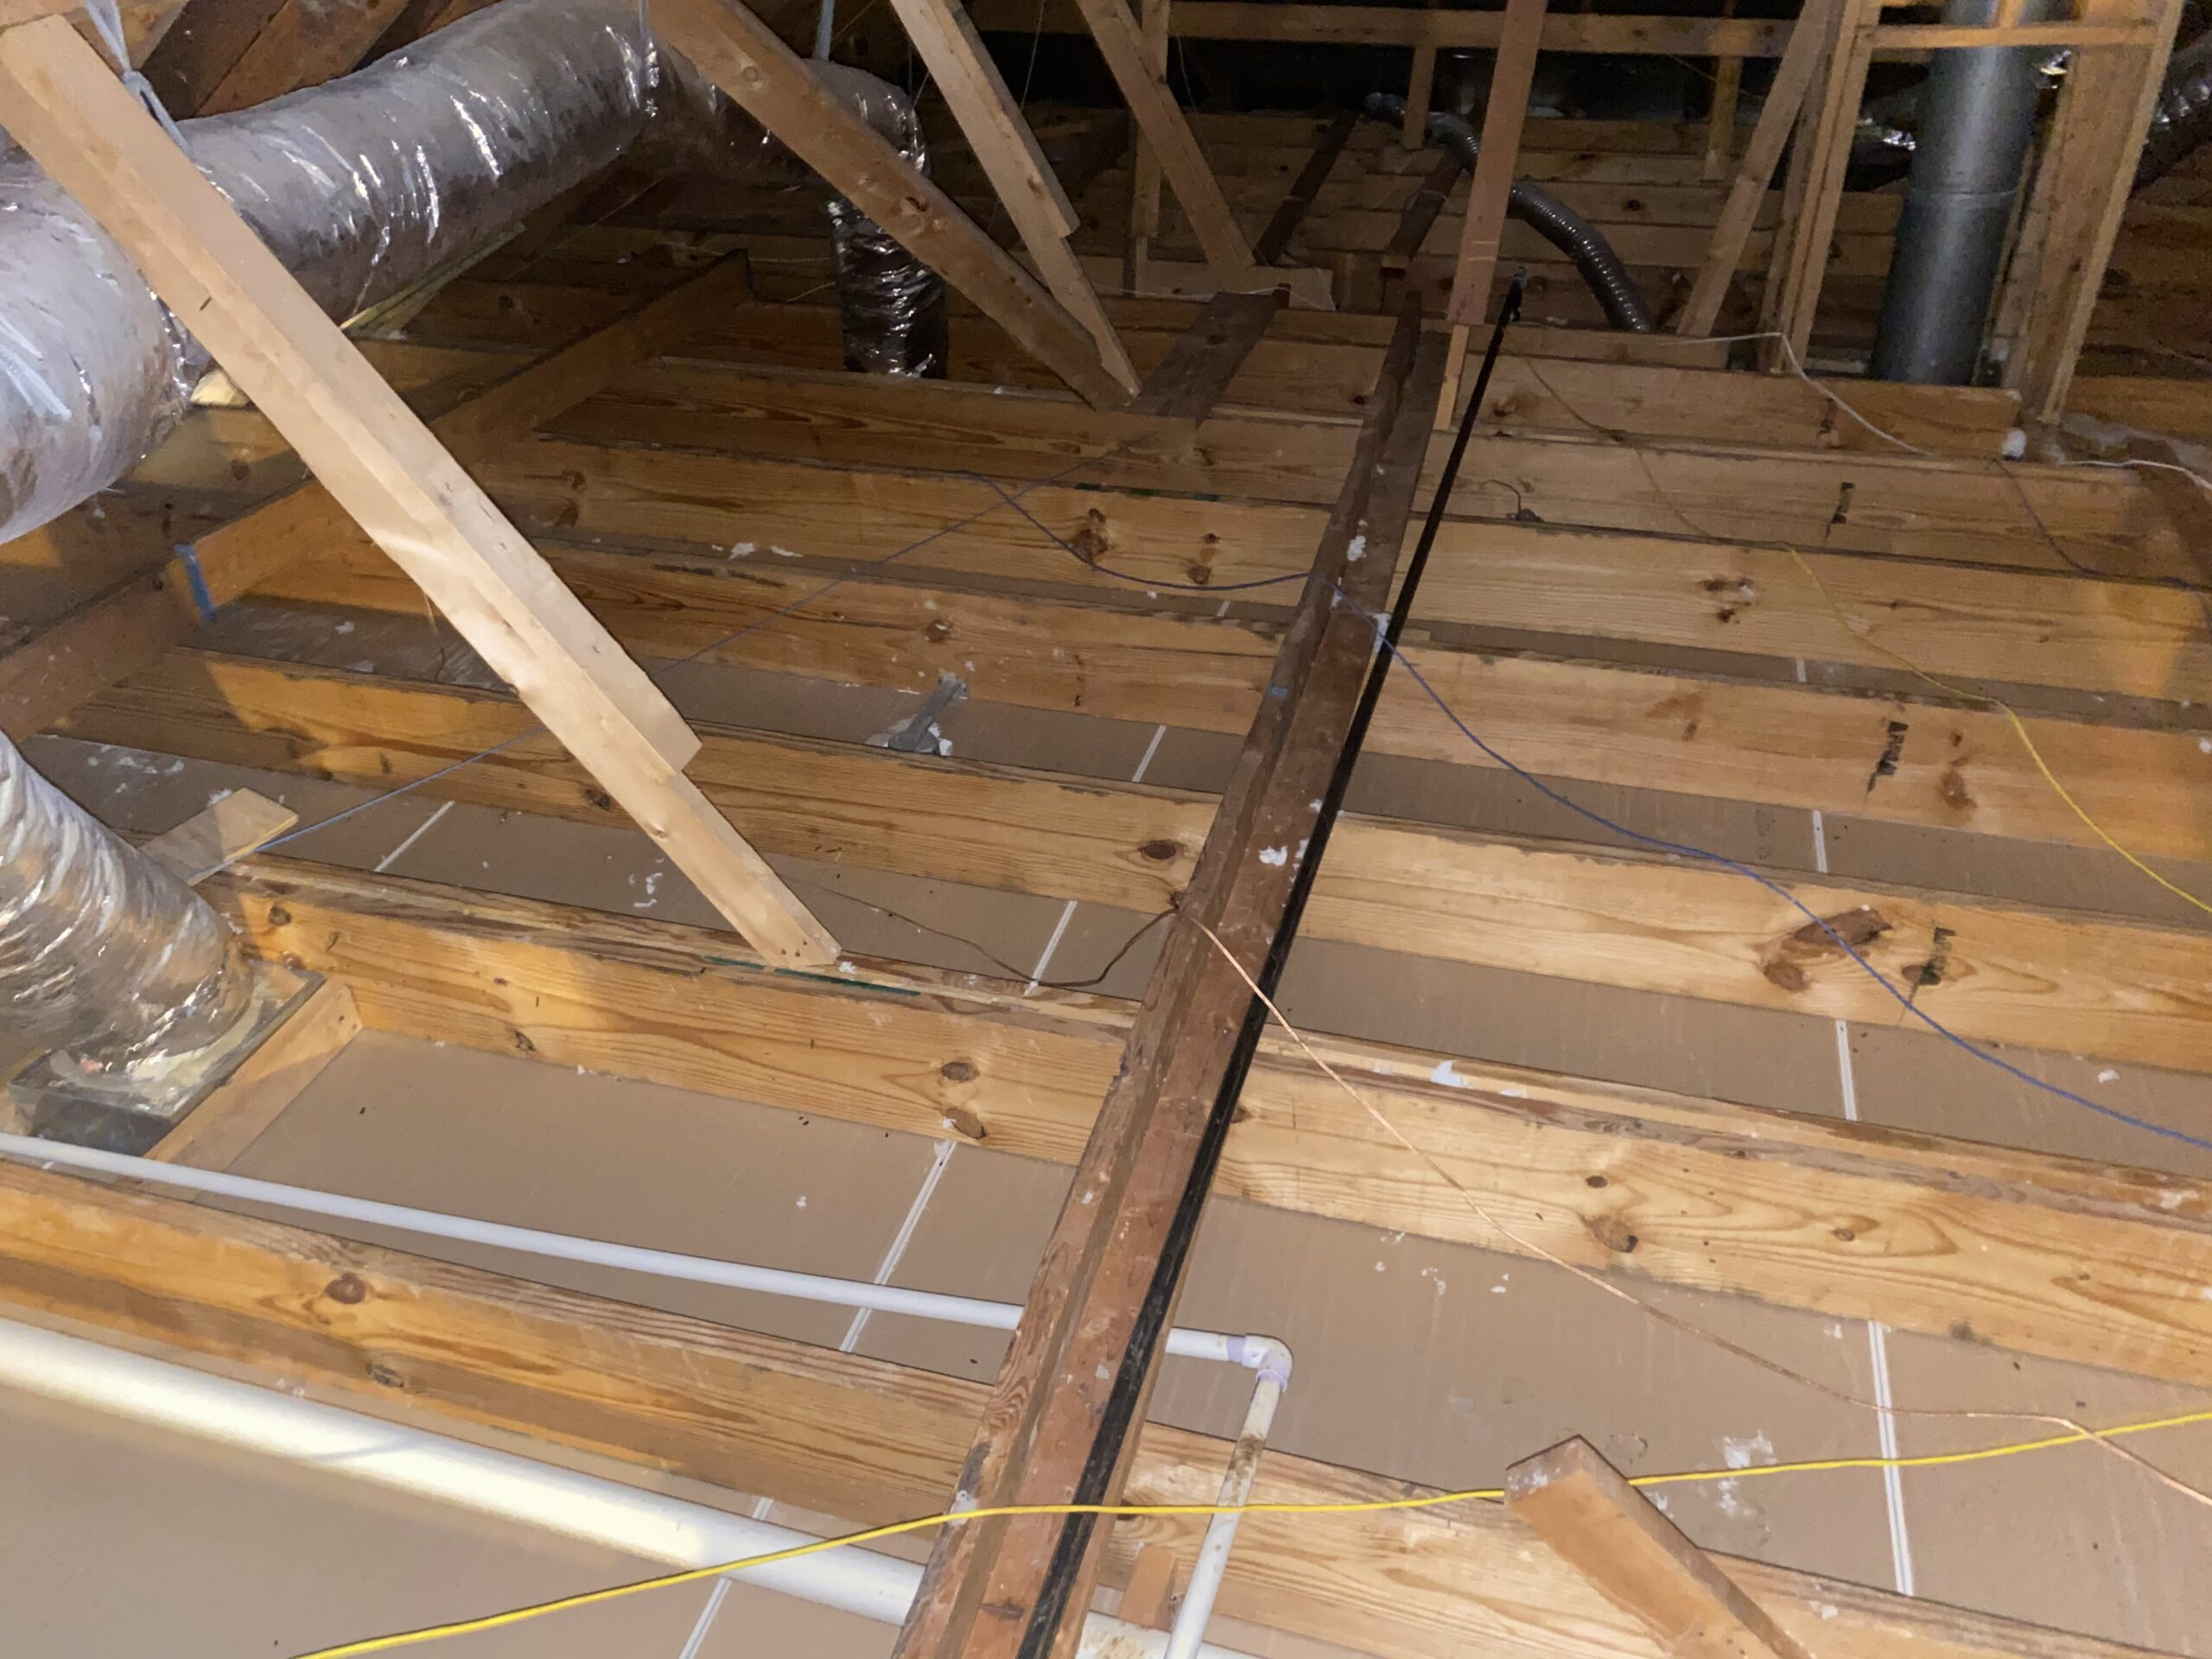 Insulation Removal Houston